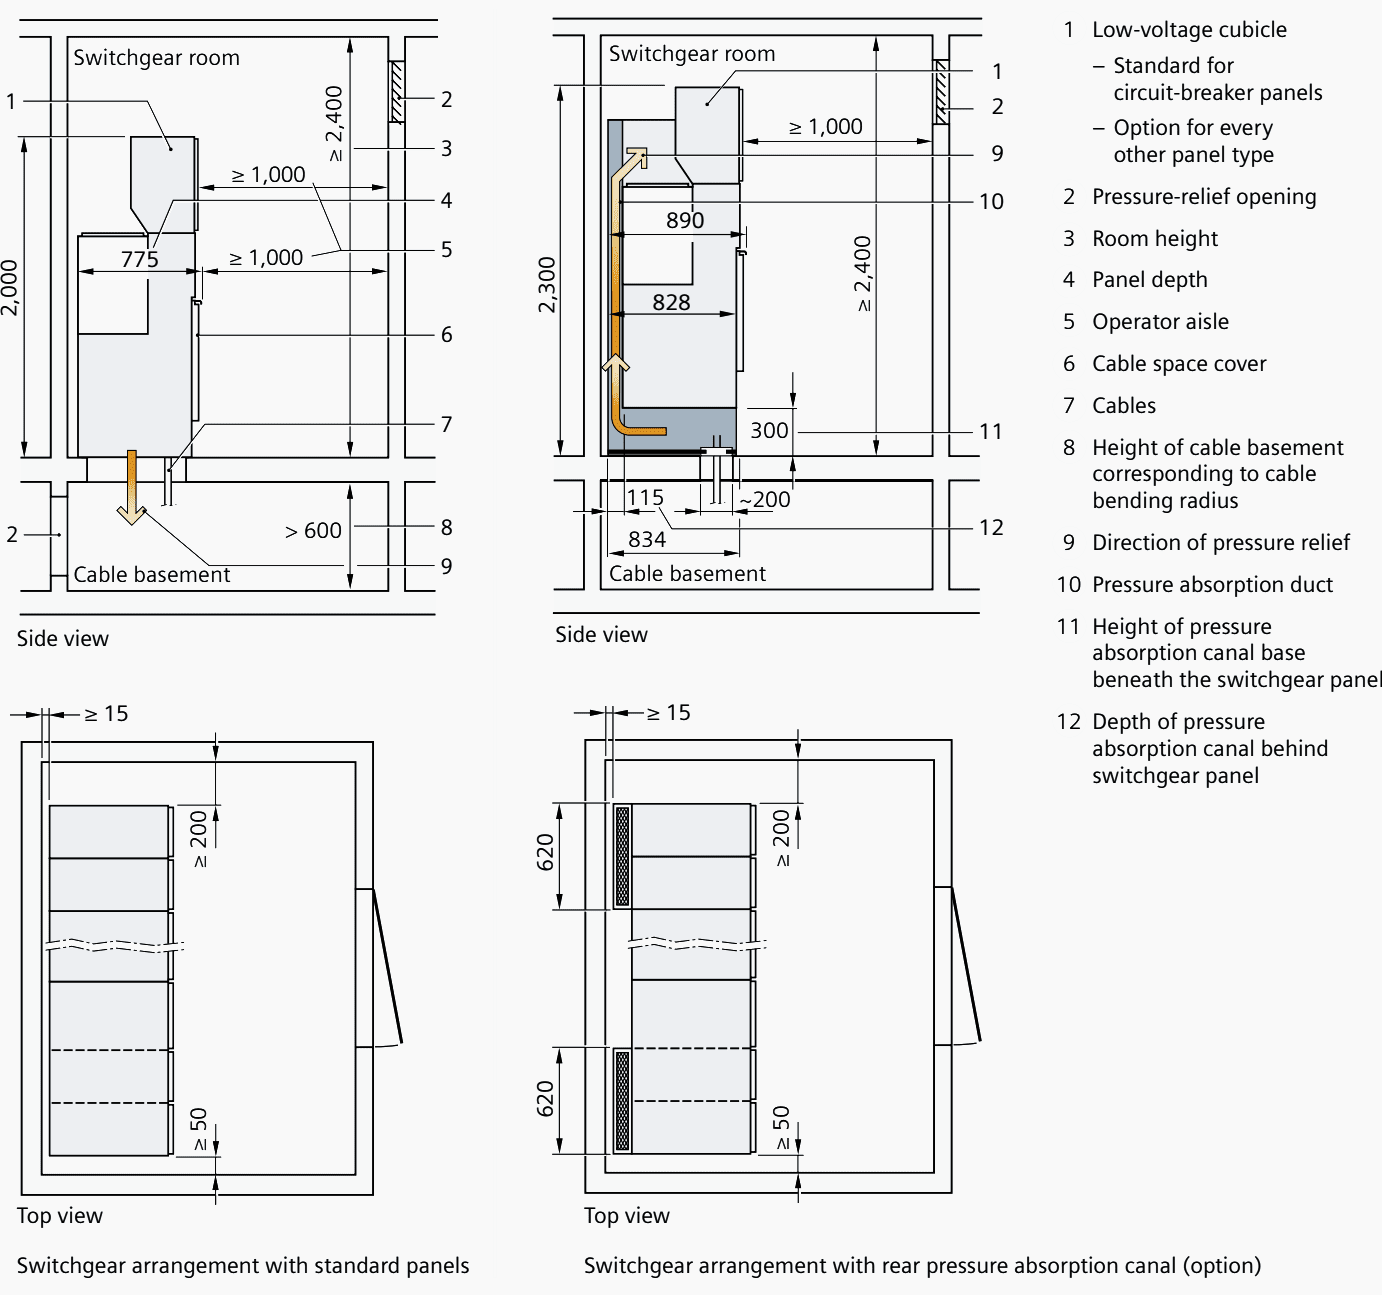 thermal fuses auto electrical wiring diagram design and installation of medium voltage switchgear [ 1382 x 1295 Pixel ]